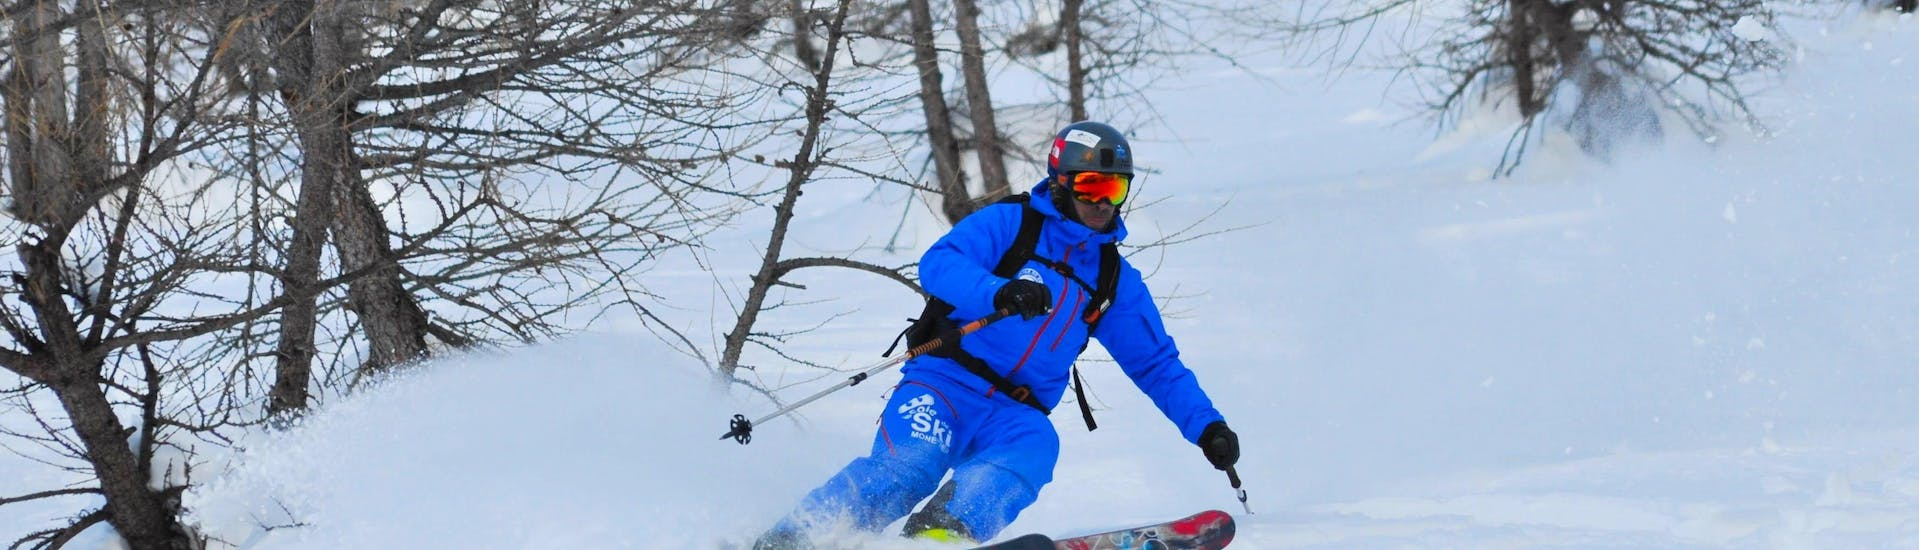 off-piste-skiing-lessons-15-25-years-all-levels-esi-monetier-hero